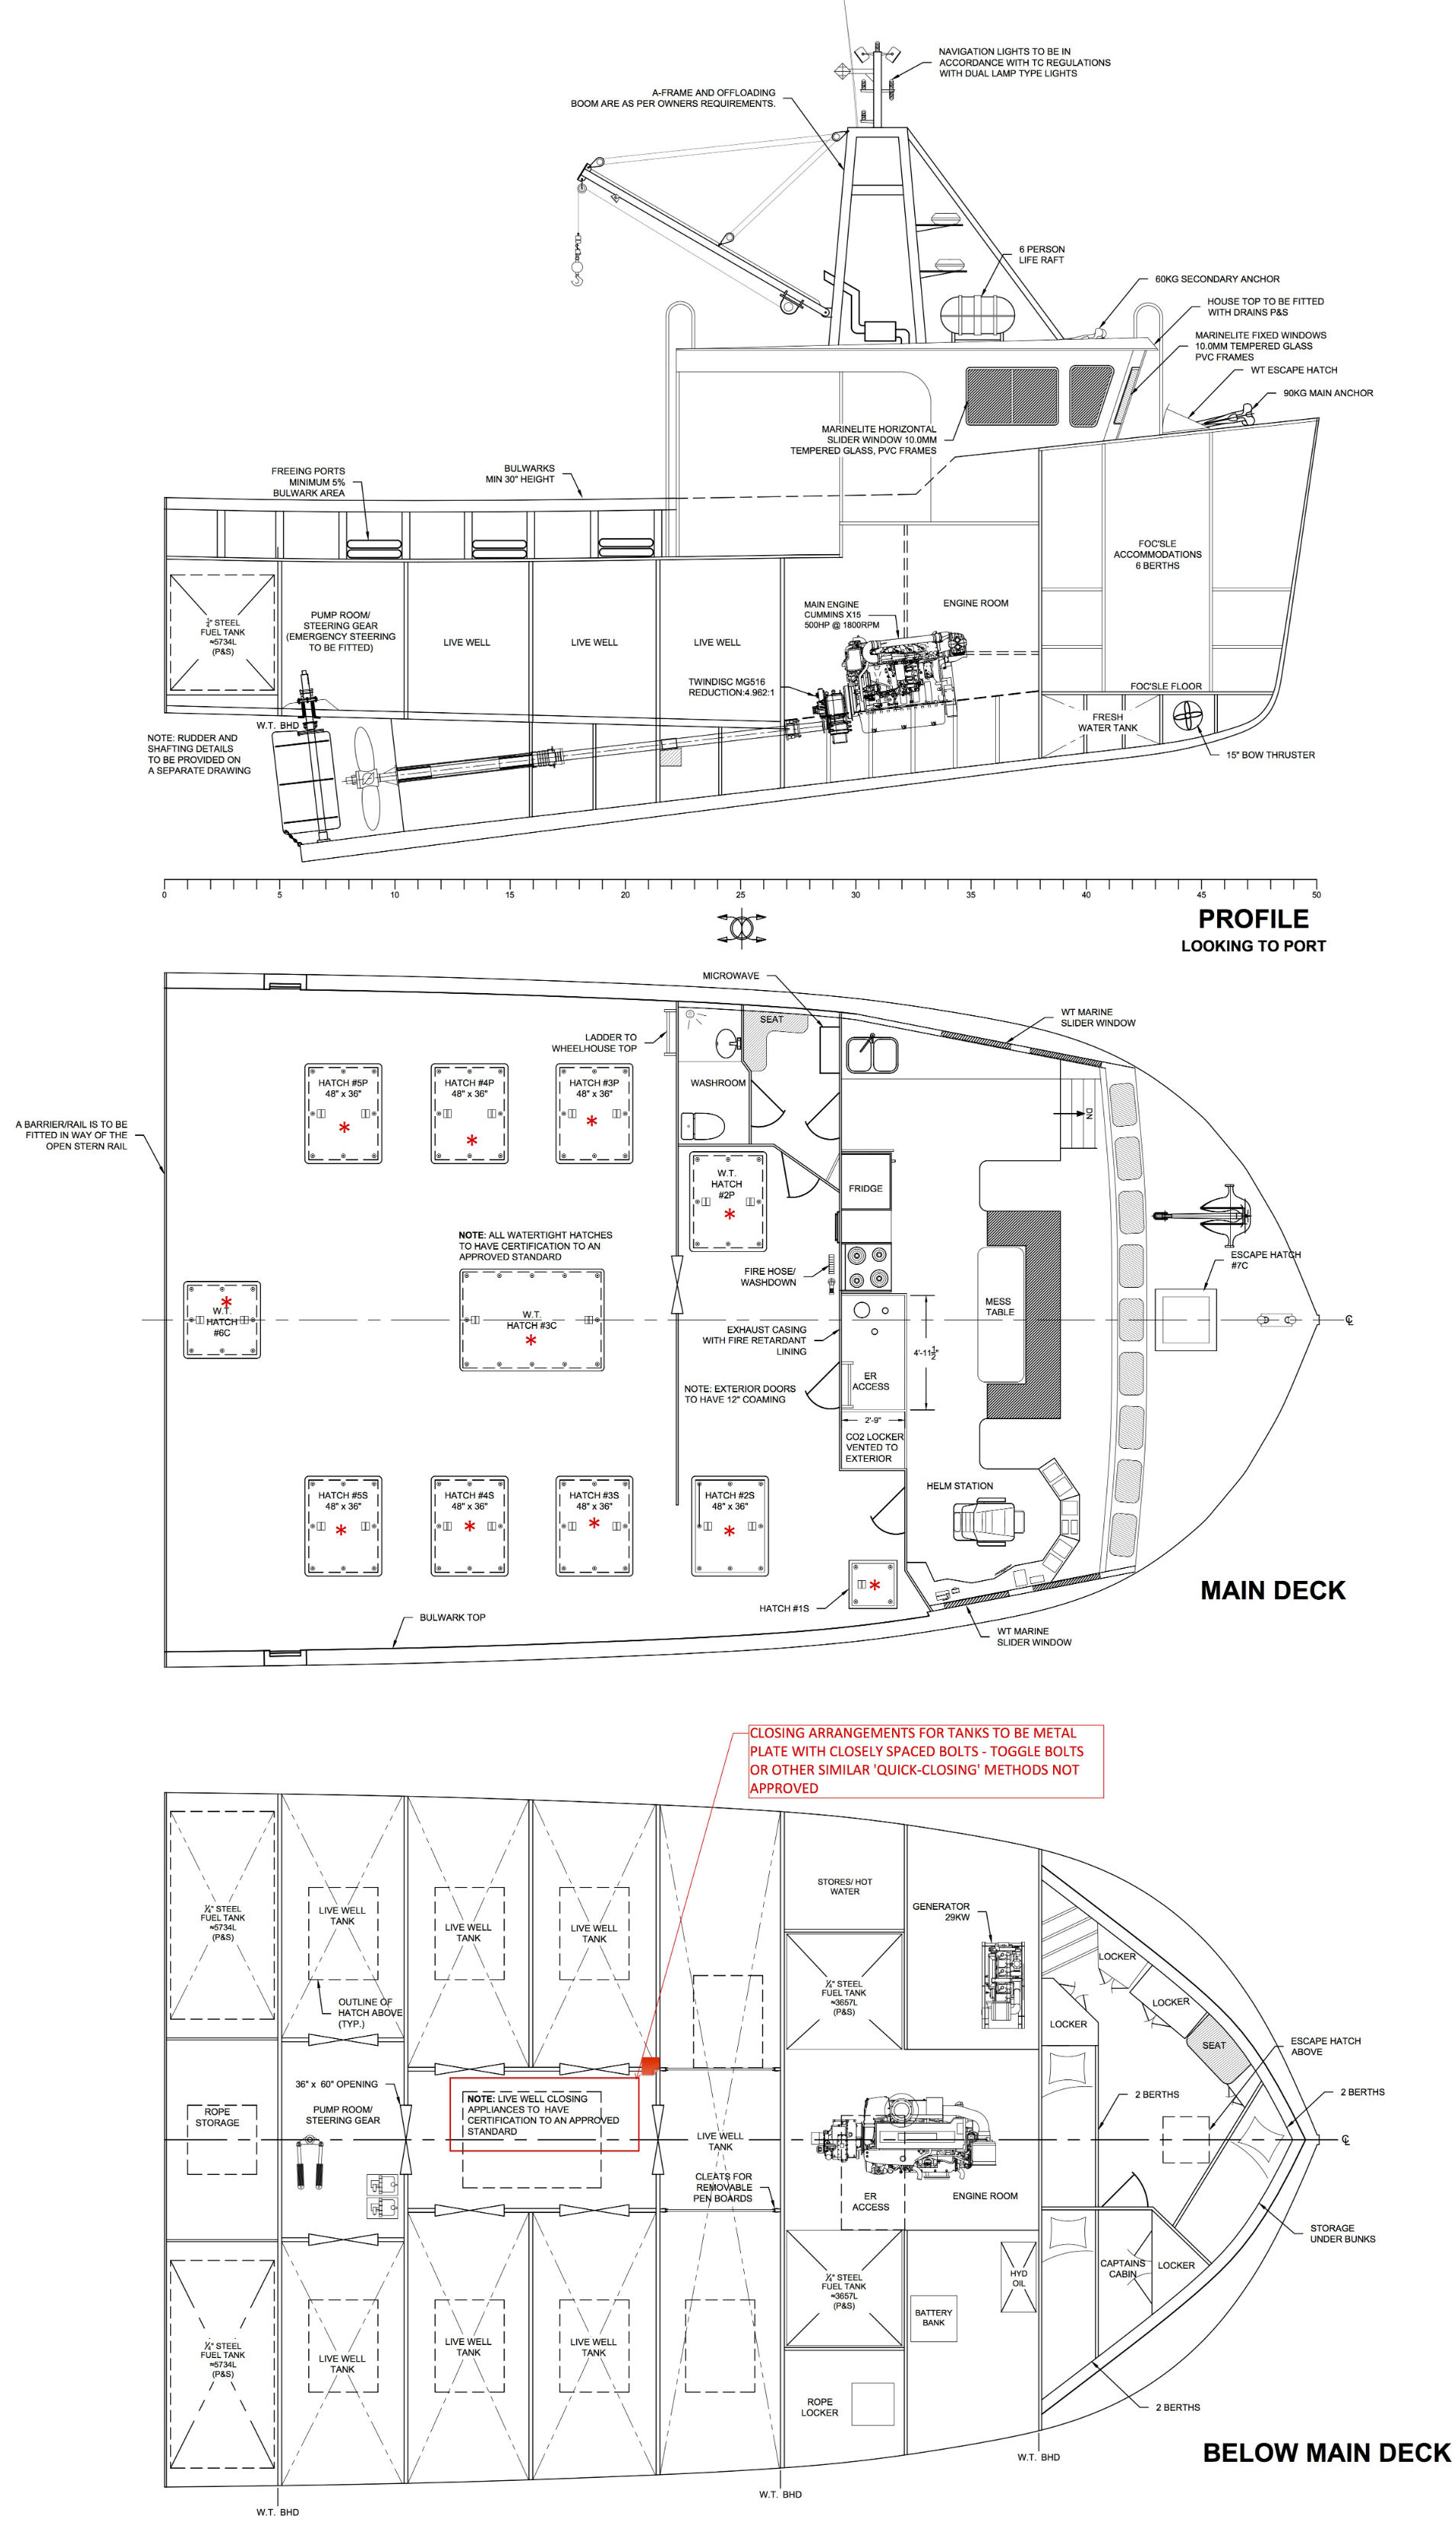 Ocean Swell X lobster boat Bayview Marine Canada General Arrangement drawing